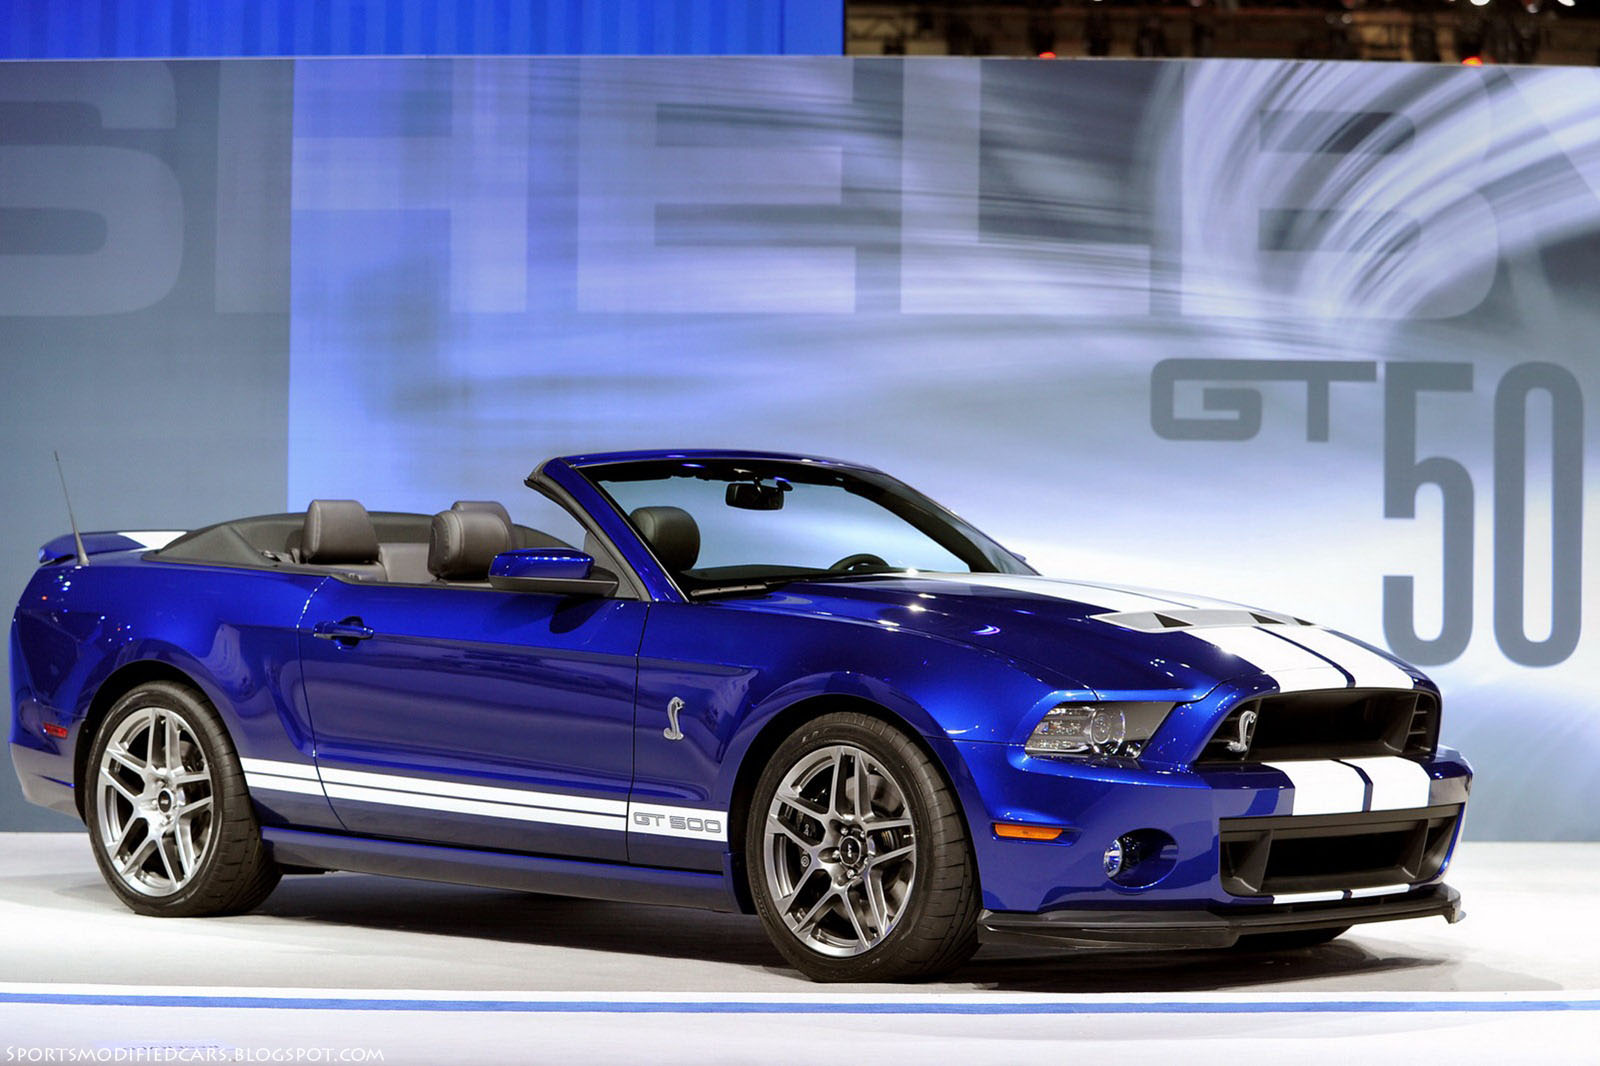 2013 ford mustang shelby gt500 sports modified cars. Black Bedroom Furniture Sets. Home Design Ideas